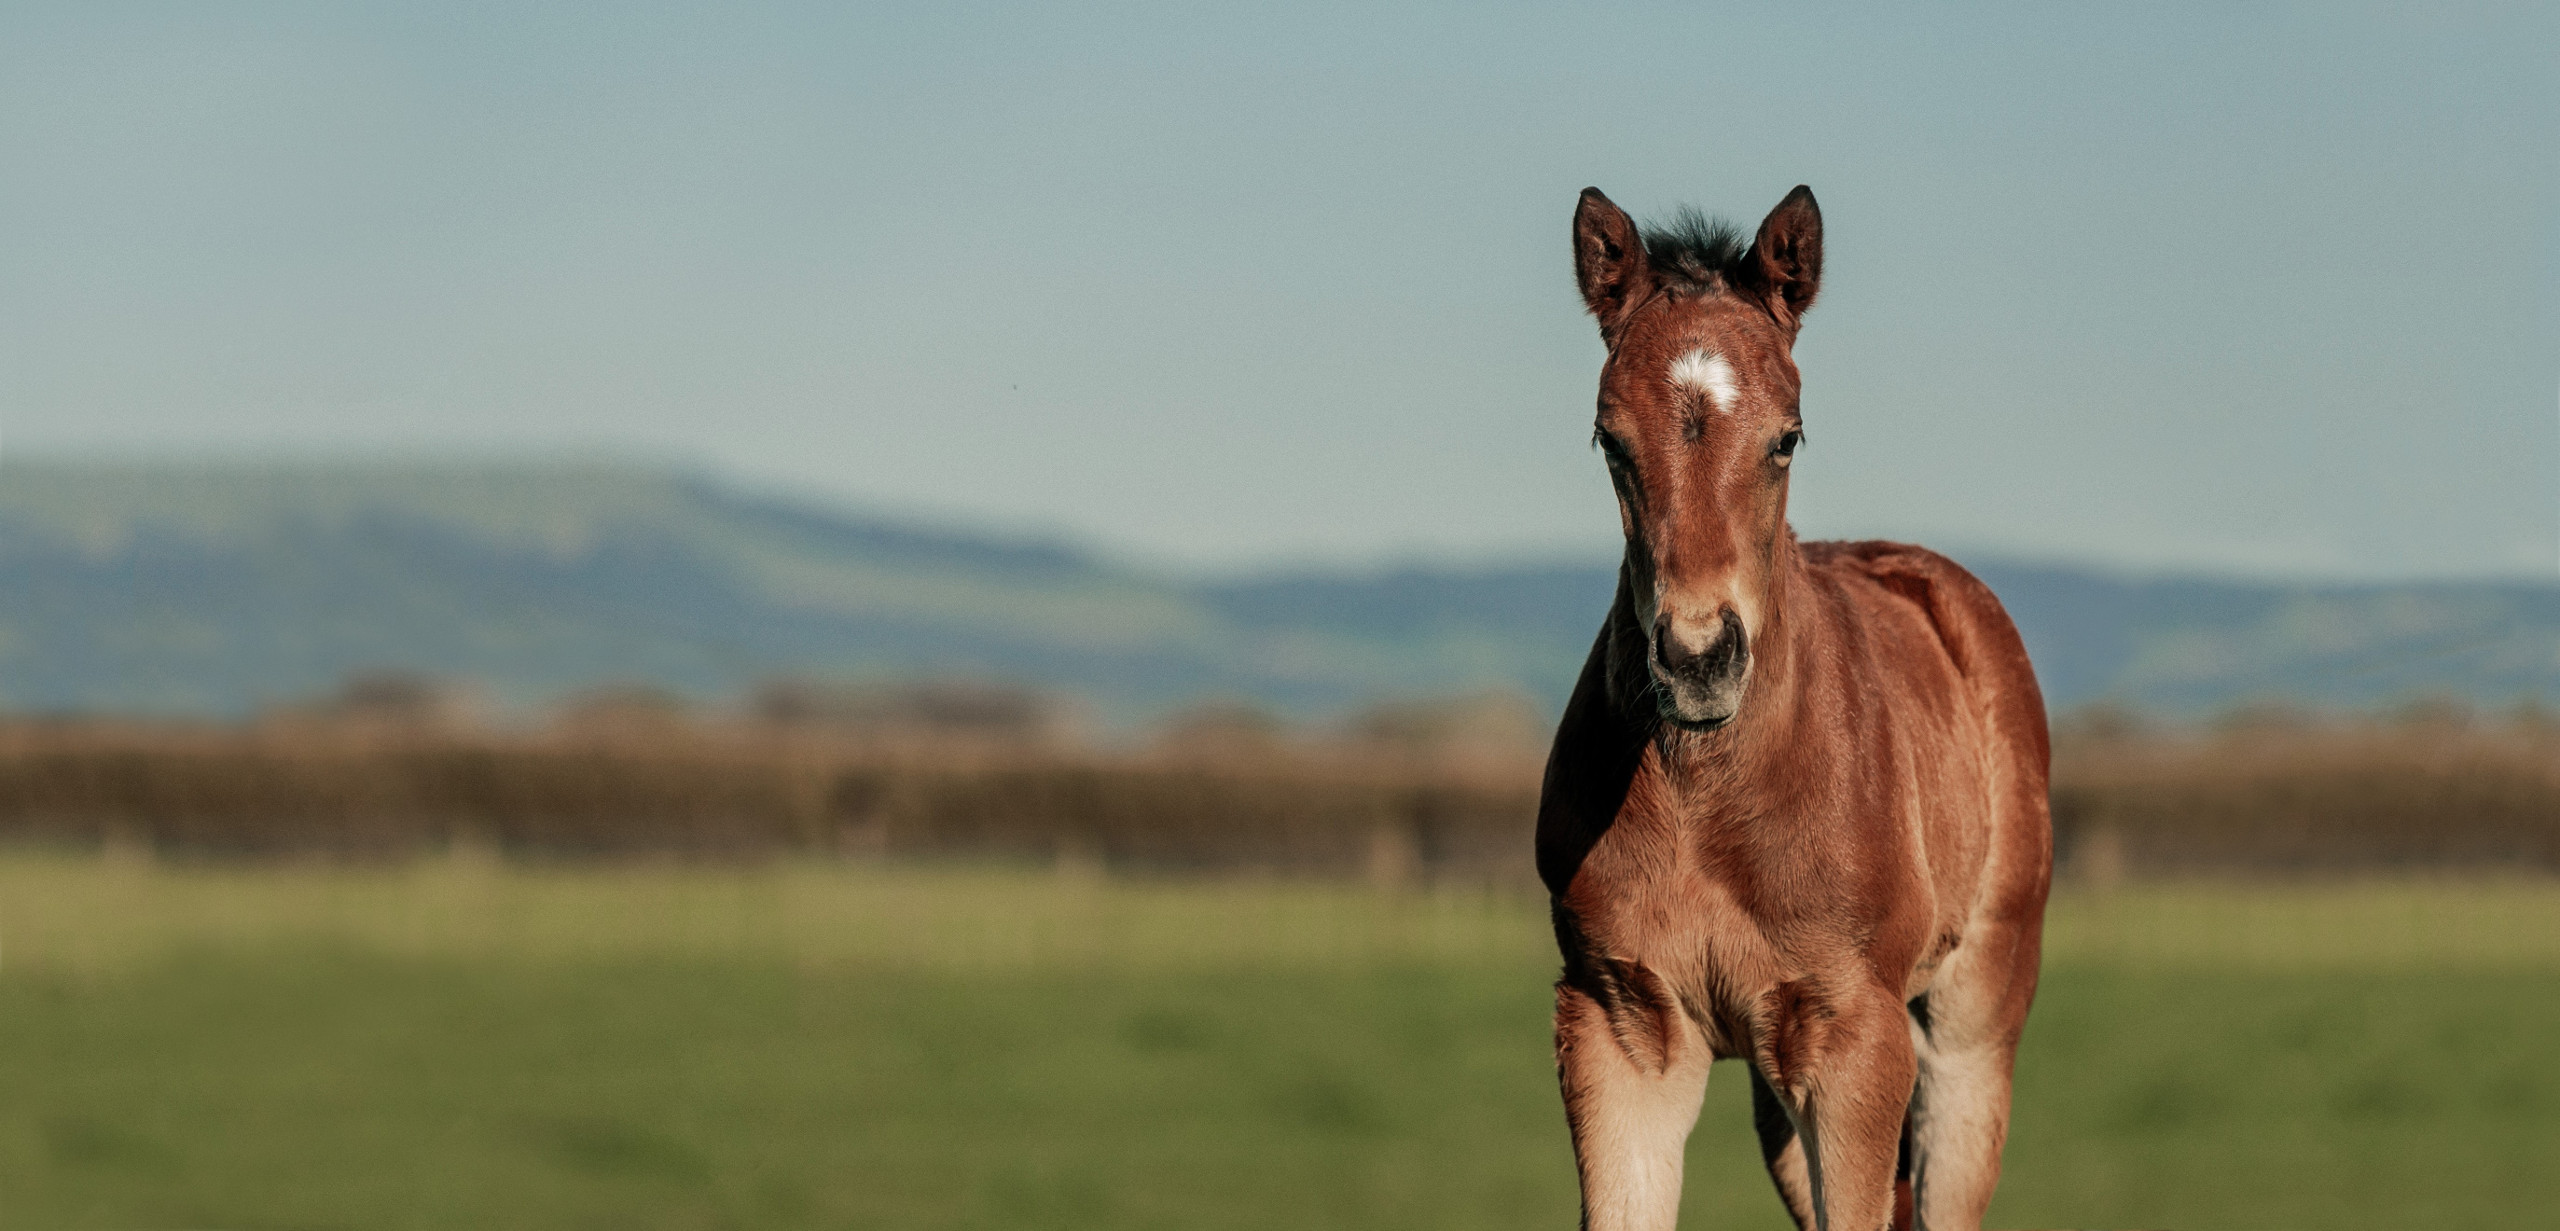 Tivaci Foal Photo Competition